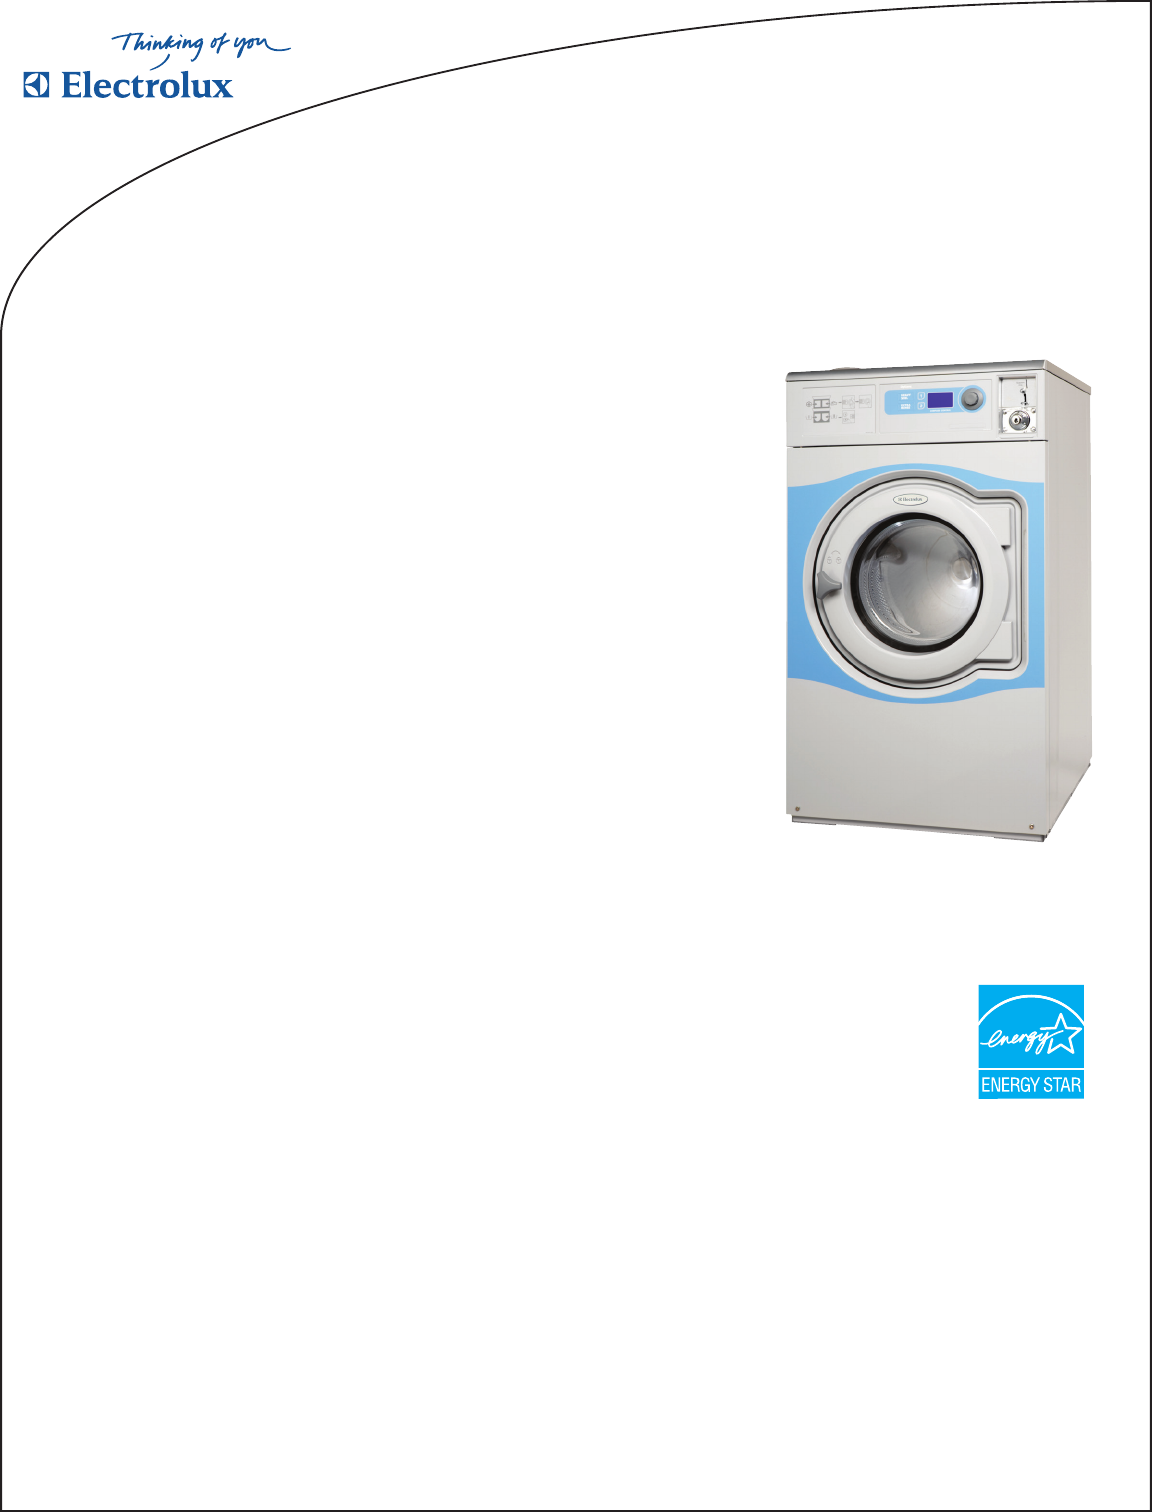 electrolux washer dryer 200 g force user guide manualsonline com rh laundry manualsonline com electrolux washer dryer user guide Manuals in PDF